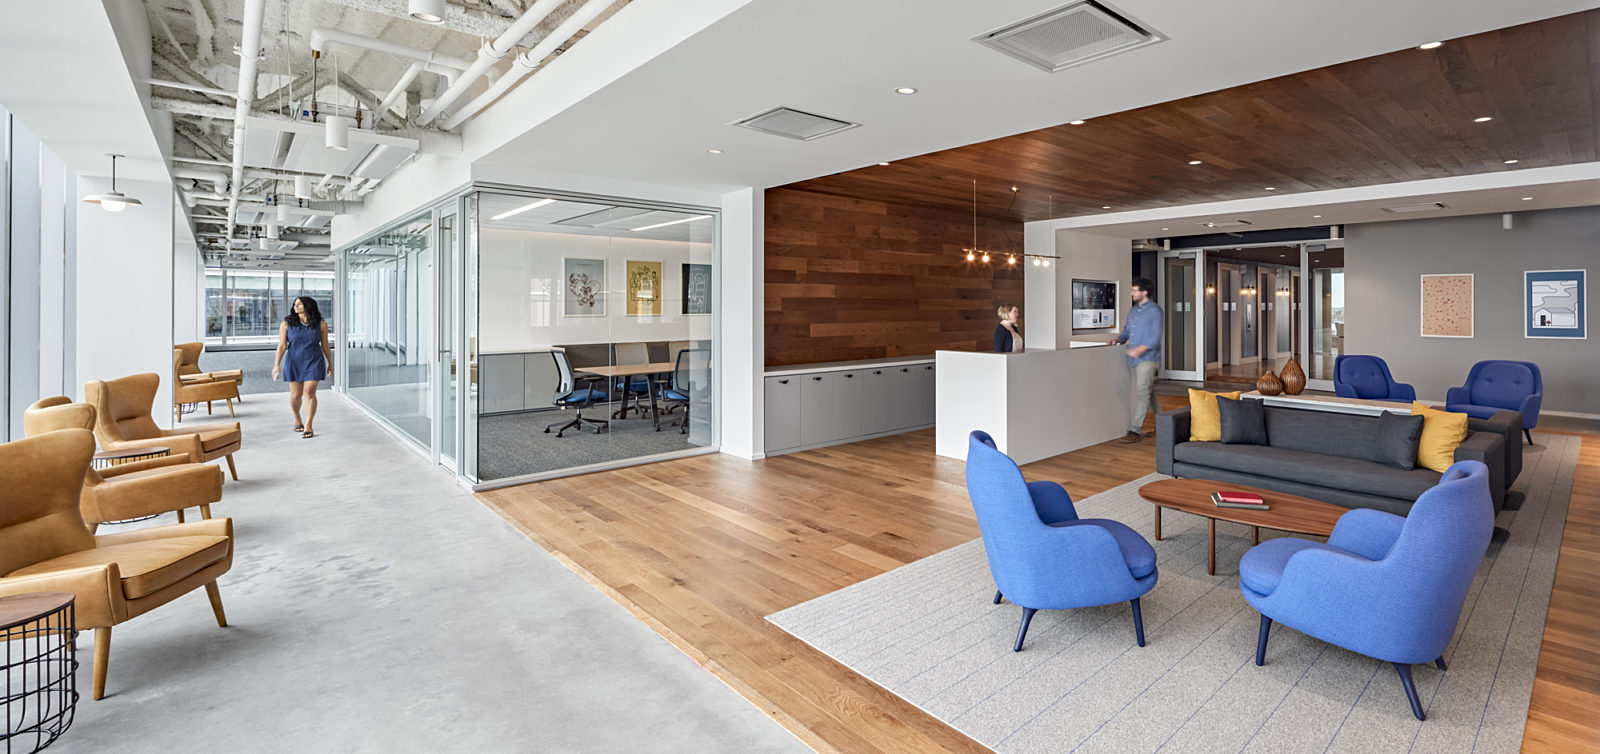 Commercial office space, lobby and reception